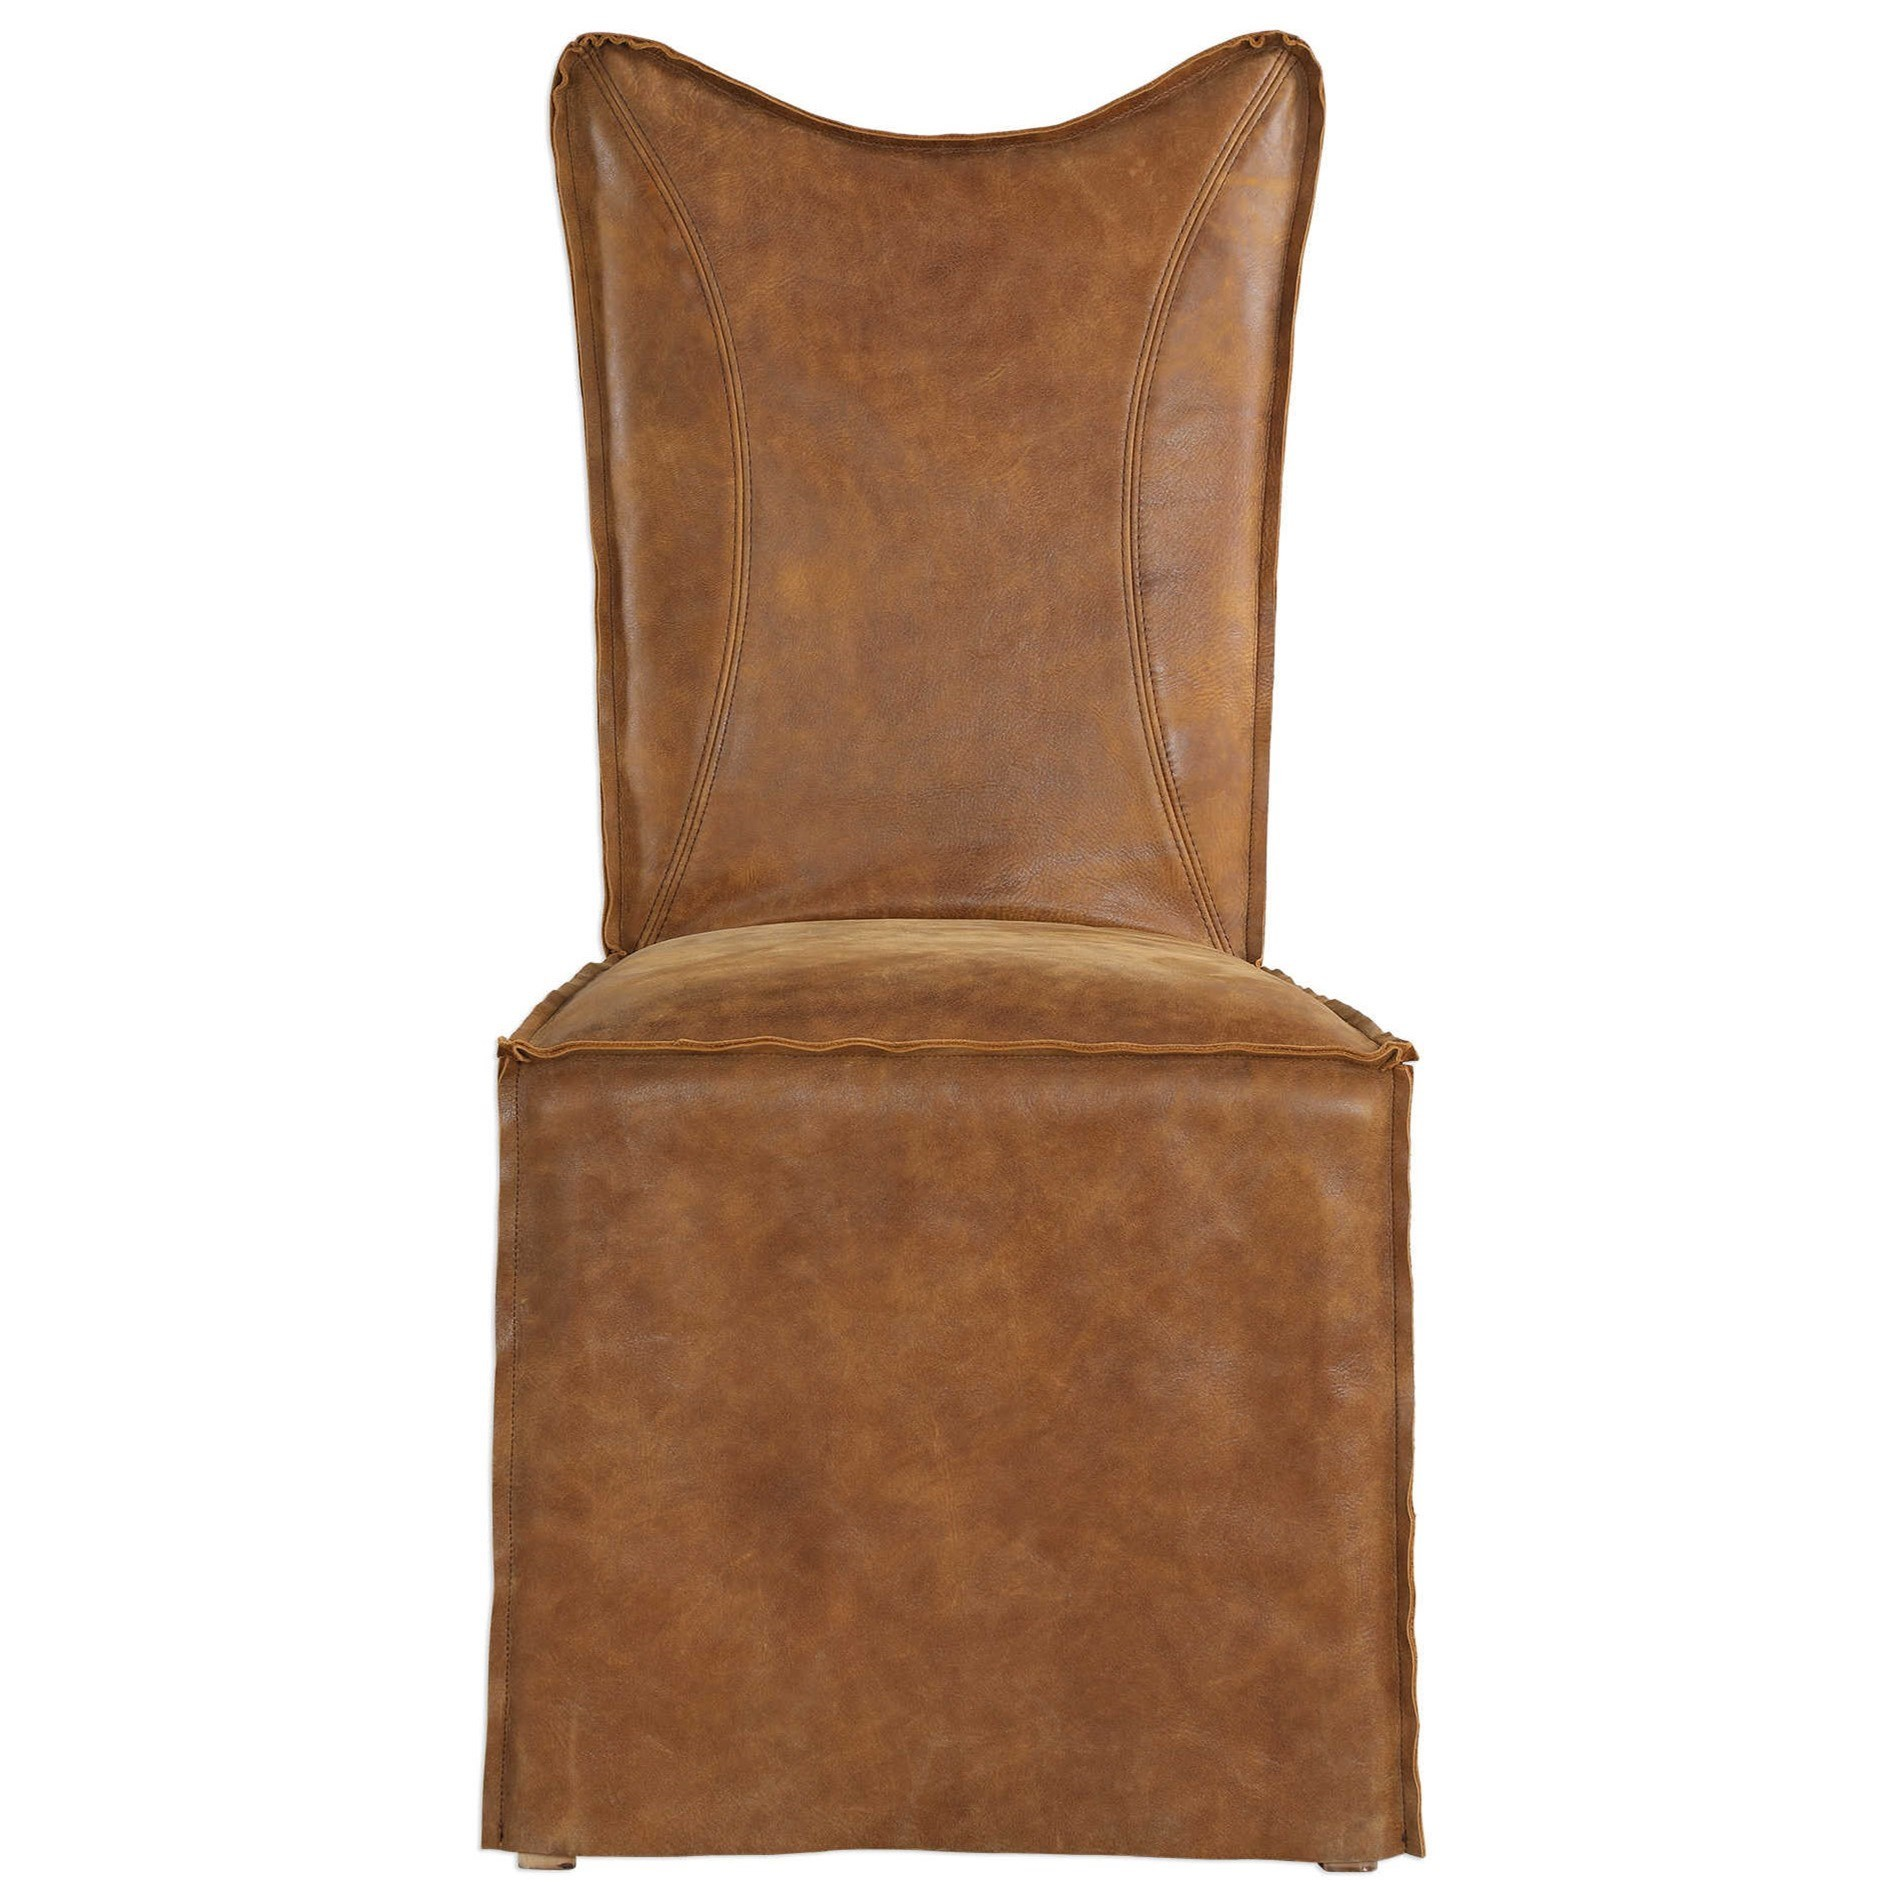 Accent Furniture Delroy Armless Chairs by Uttermost at Michael Alan Furniture & Design